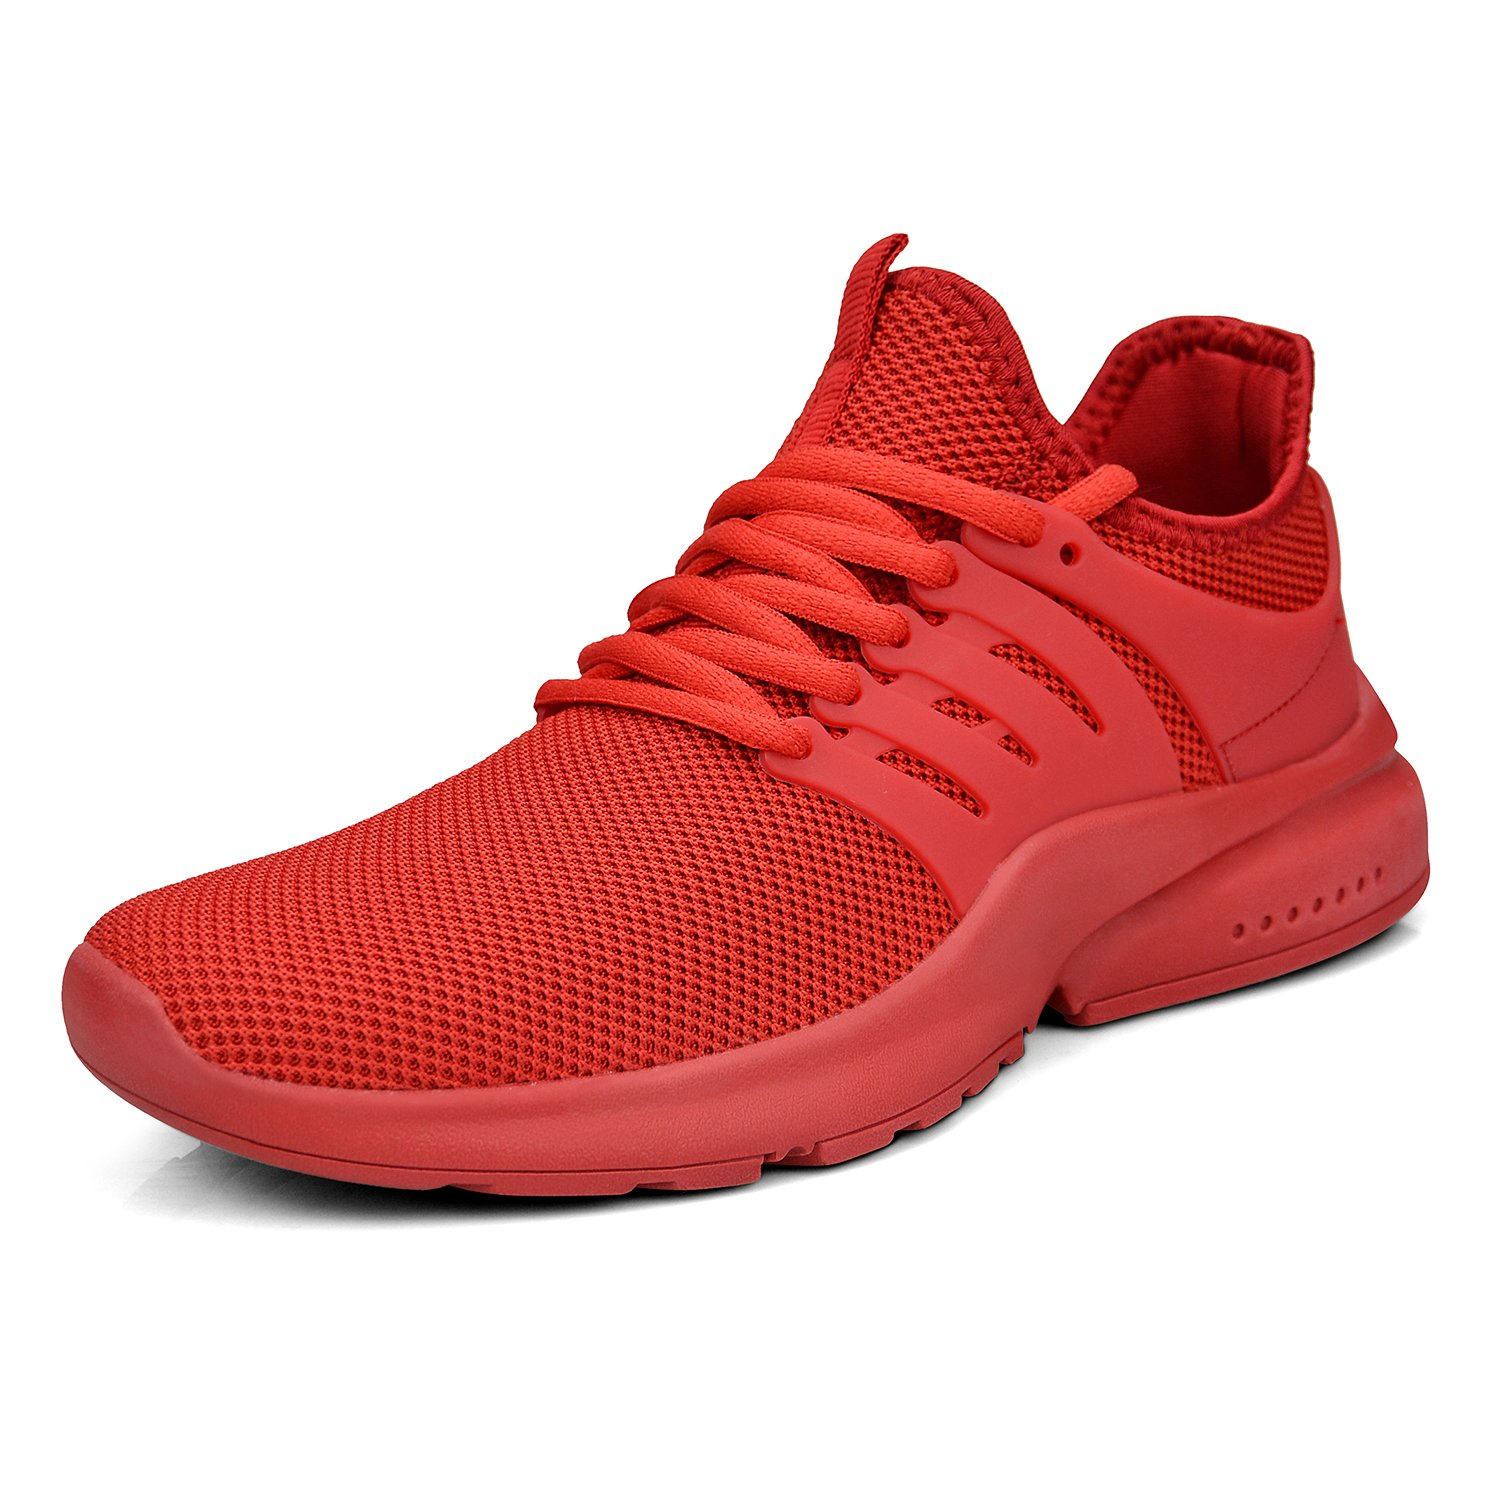 ZOCAVIA Womens Running Shoes,Sport Casual Fashion Lightweight Sneakers(Red,Size 8) by ZOCAVIA